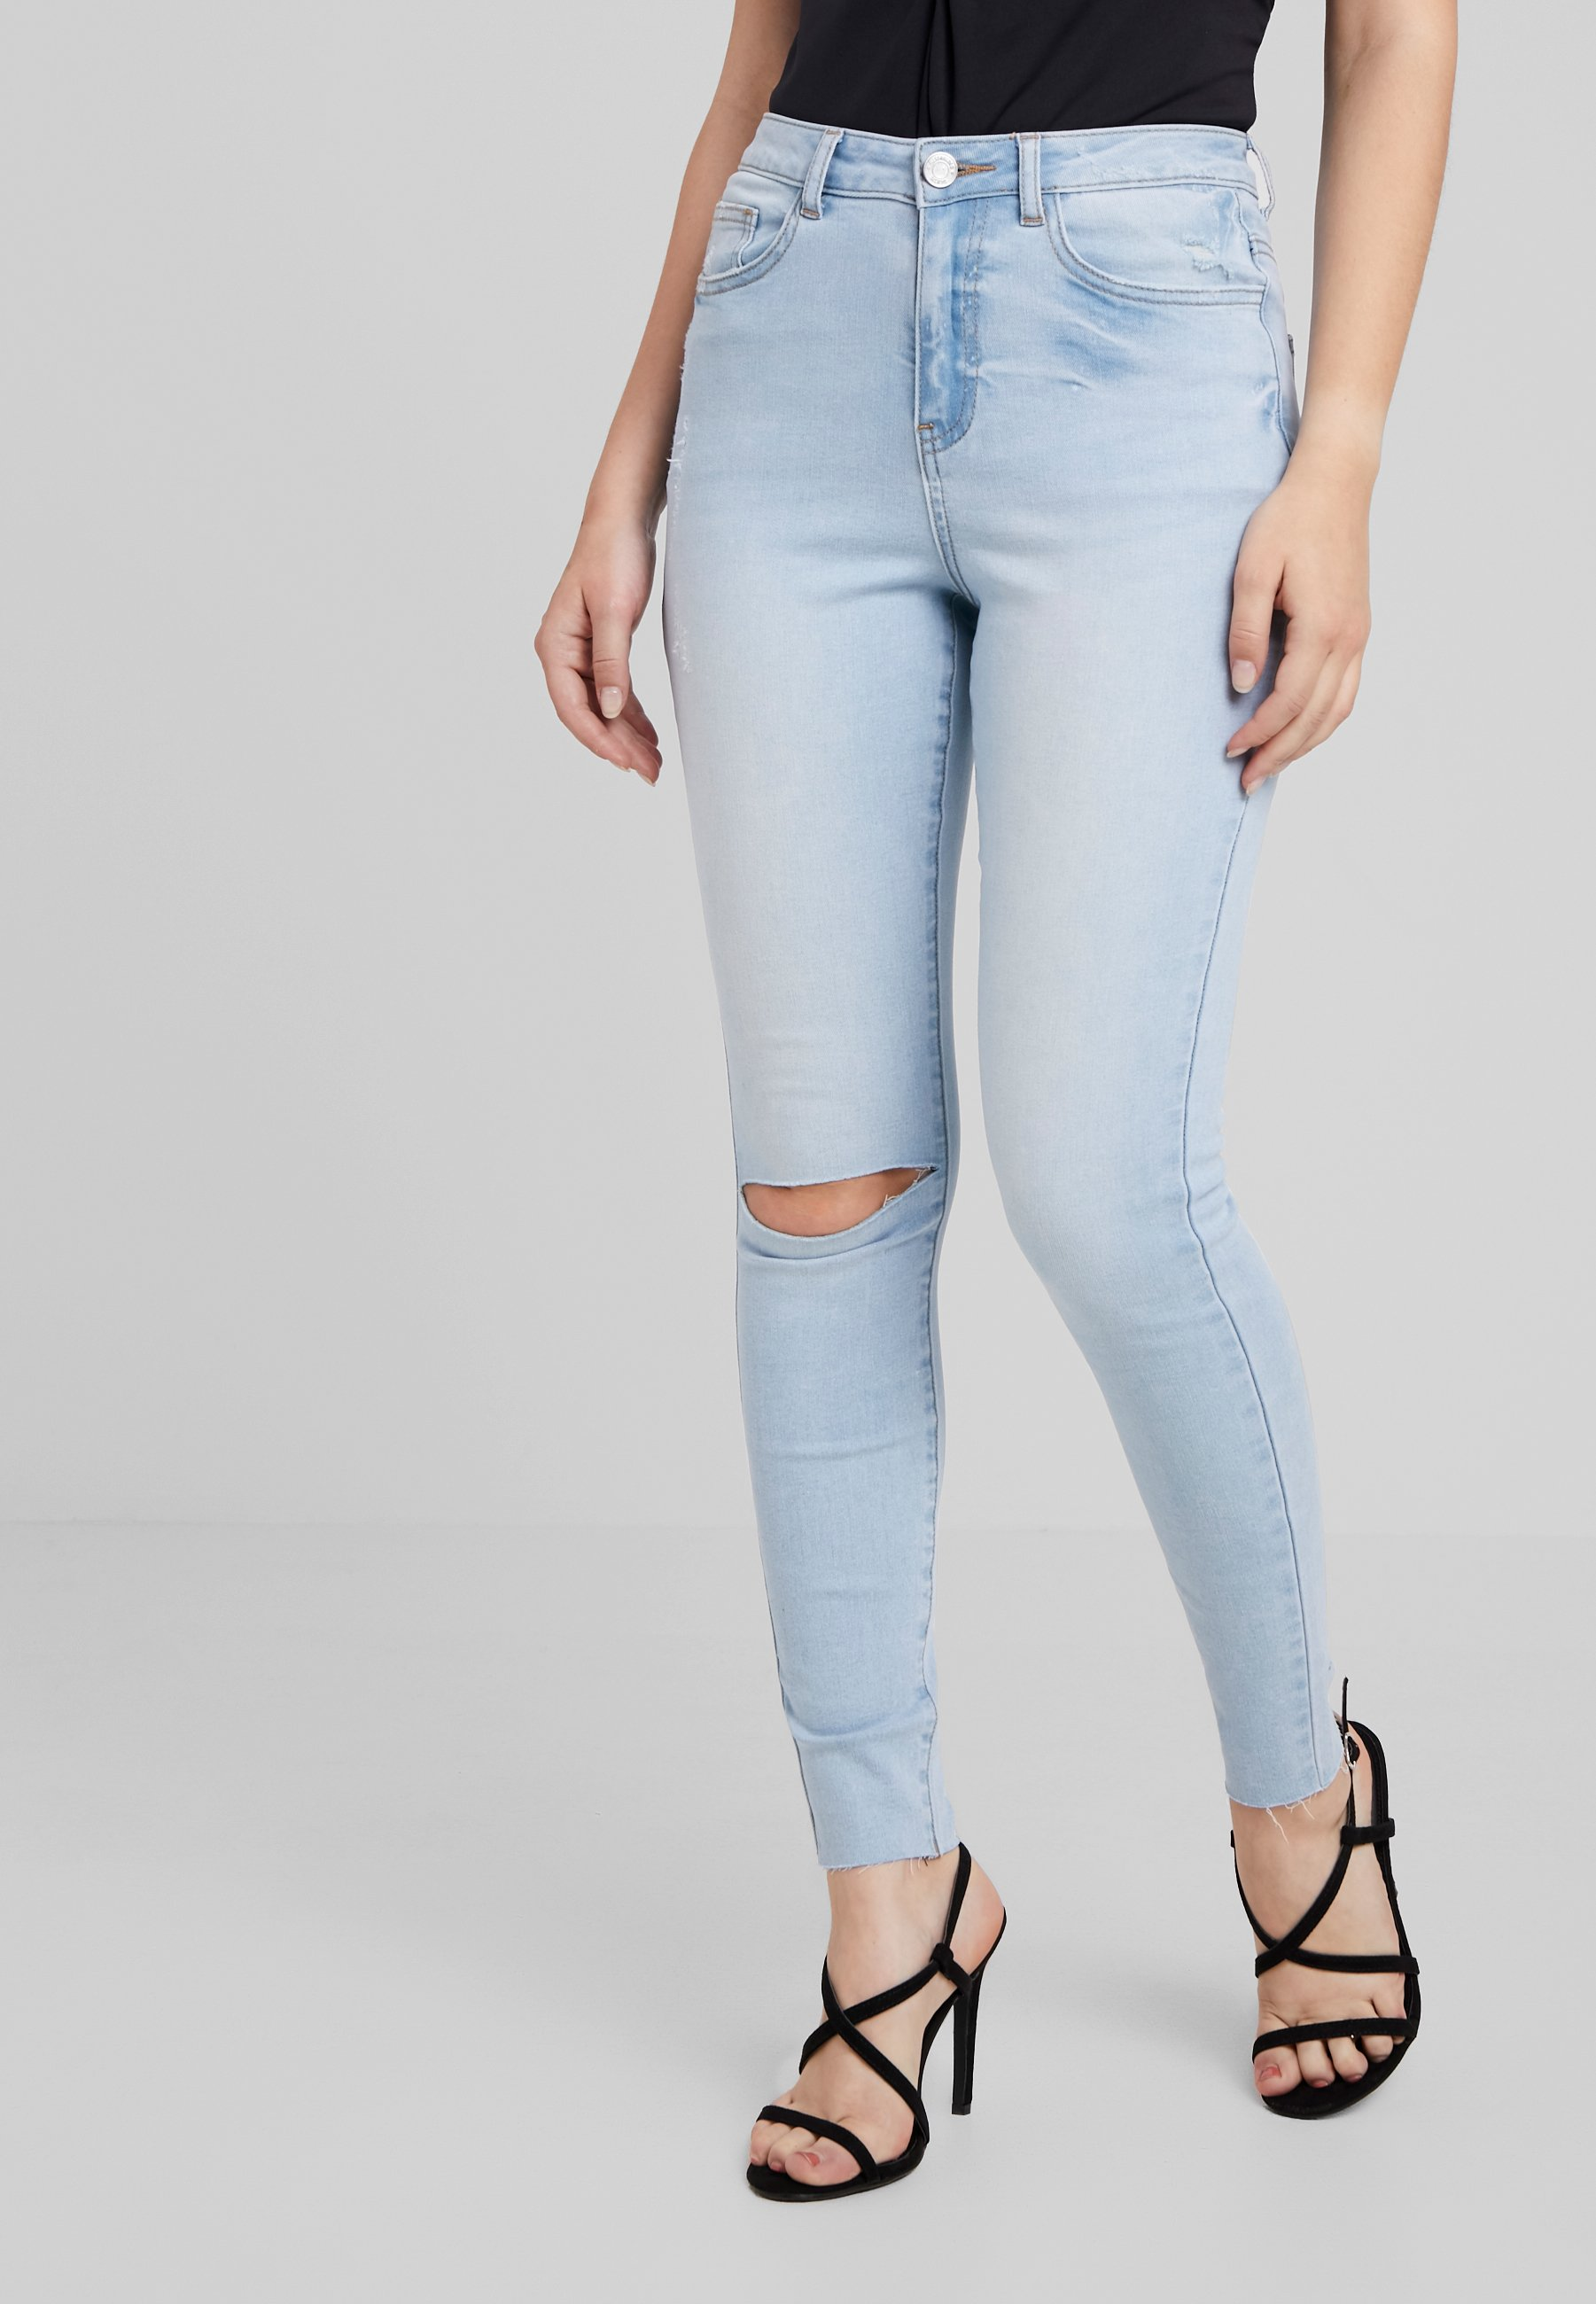 Sinner Stonewash KneeJeans Missguided Single Petite Fit Skinny YI76ymbvfg